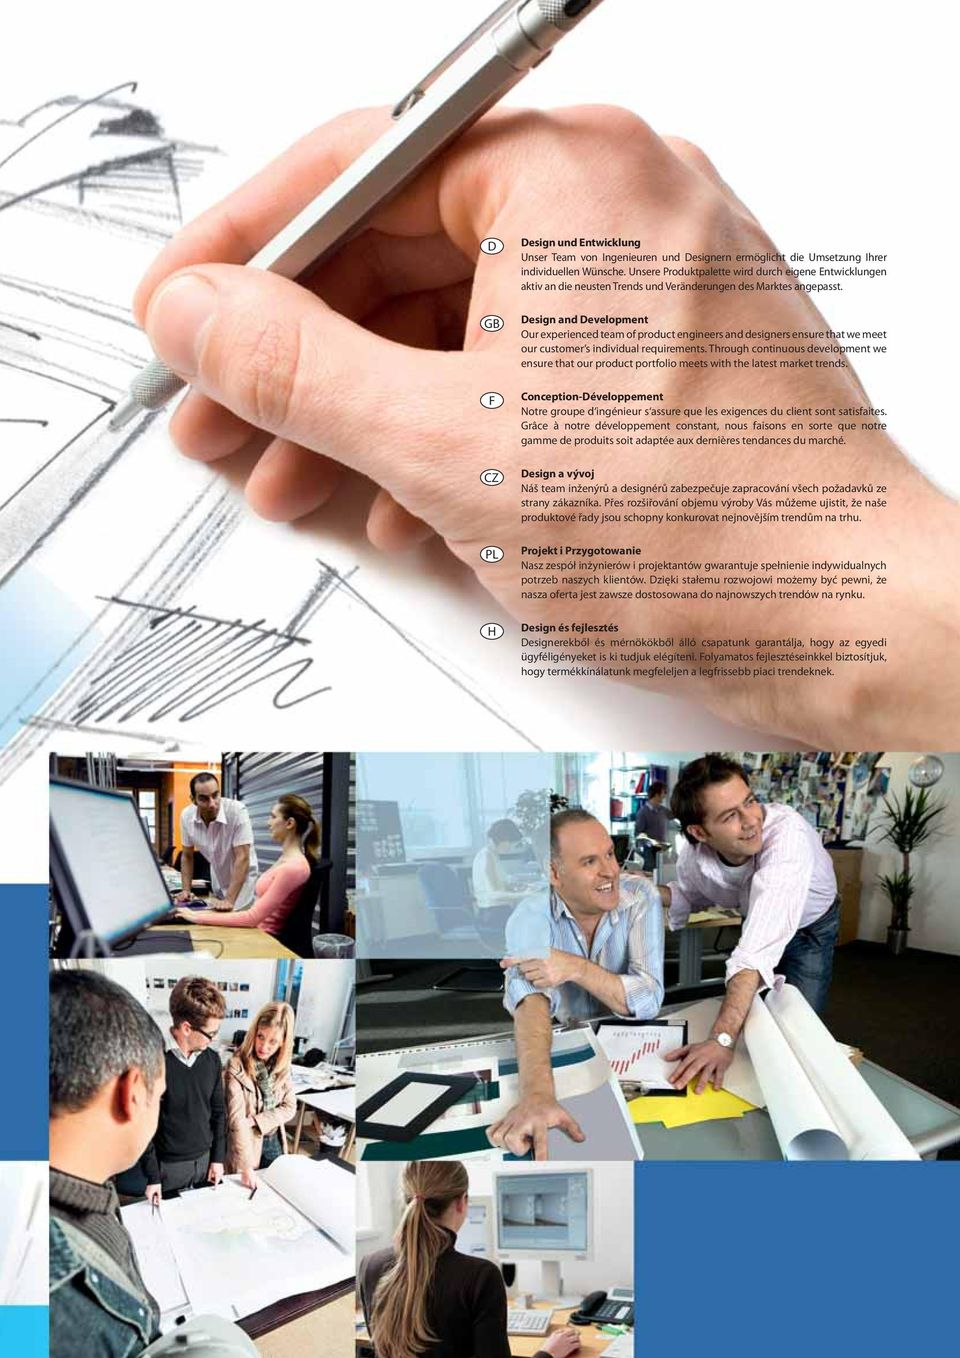 esign and evelopment Our experienced team of product engineers and designers ensure that we meet our customer s individual requirements.